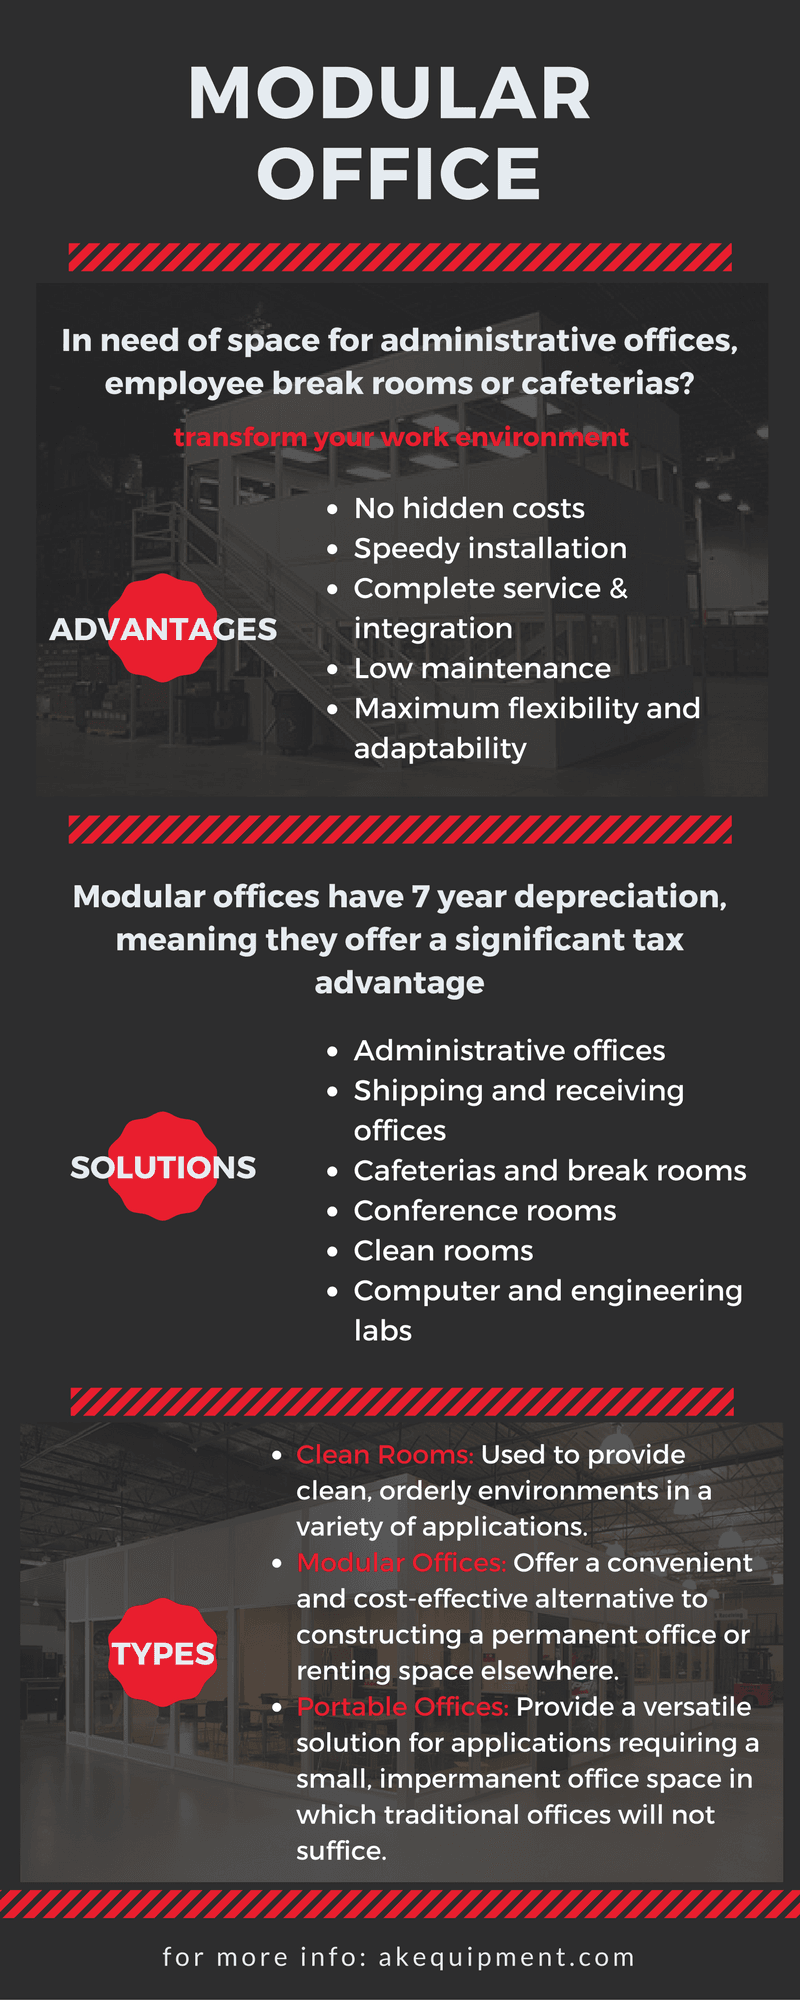 Modular office. In need of space for administrative offices, employee break rooms or cafeterias? Transform your work environment. Advantages: No hidden costs, speedy installation, complete service and integration, low maintenance, maximum flexibility and adaptability. Modular offices have a 7-year depreciation, meaning they offer a significant tax advantage. Solutions: Administrative offices, shipping and receiving offices, cafeterias and break rooms, conference rooms, clean rooms, computer and engineering labs. Clean Rooms: used to provide clean, orderly environments in a variety of applications. Modular offices: offer a convenient and cost-effective alternative to constructing a permanent office or renting space elsewhere. Portable Offices: Provide a versatile solution for applications requiring a small, impermanent office space in which traditional offices will not suffice. For more information visit akequipment.com.